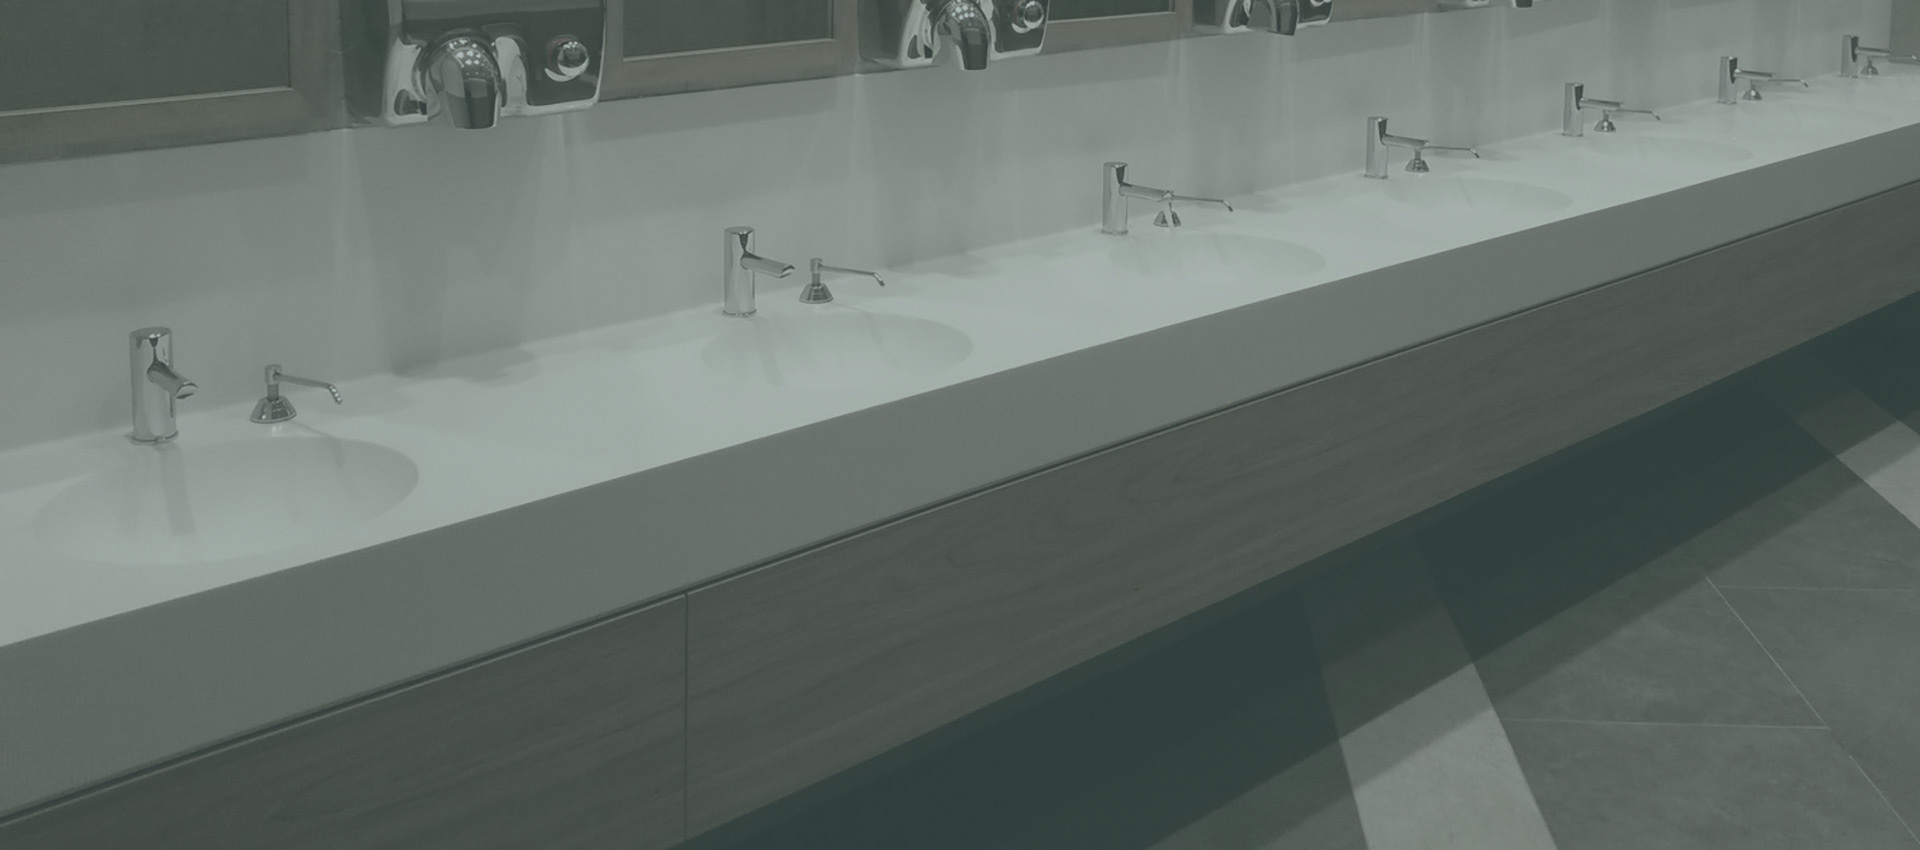 Corian Contract | Andreoli Corian® & Solid Surfaces